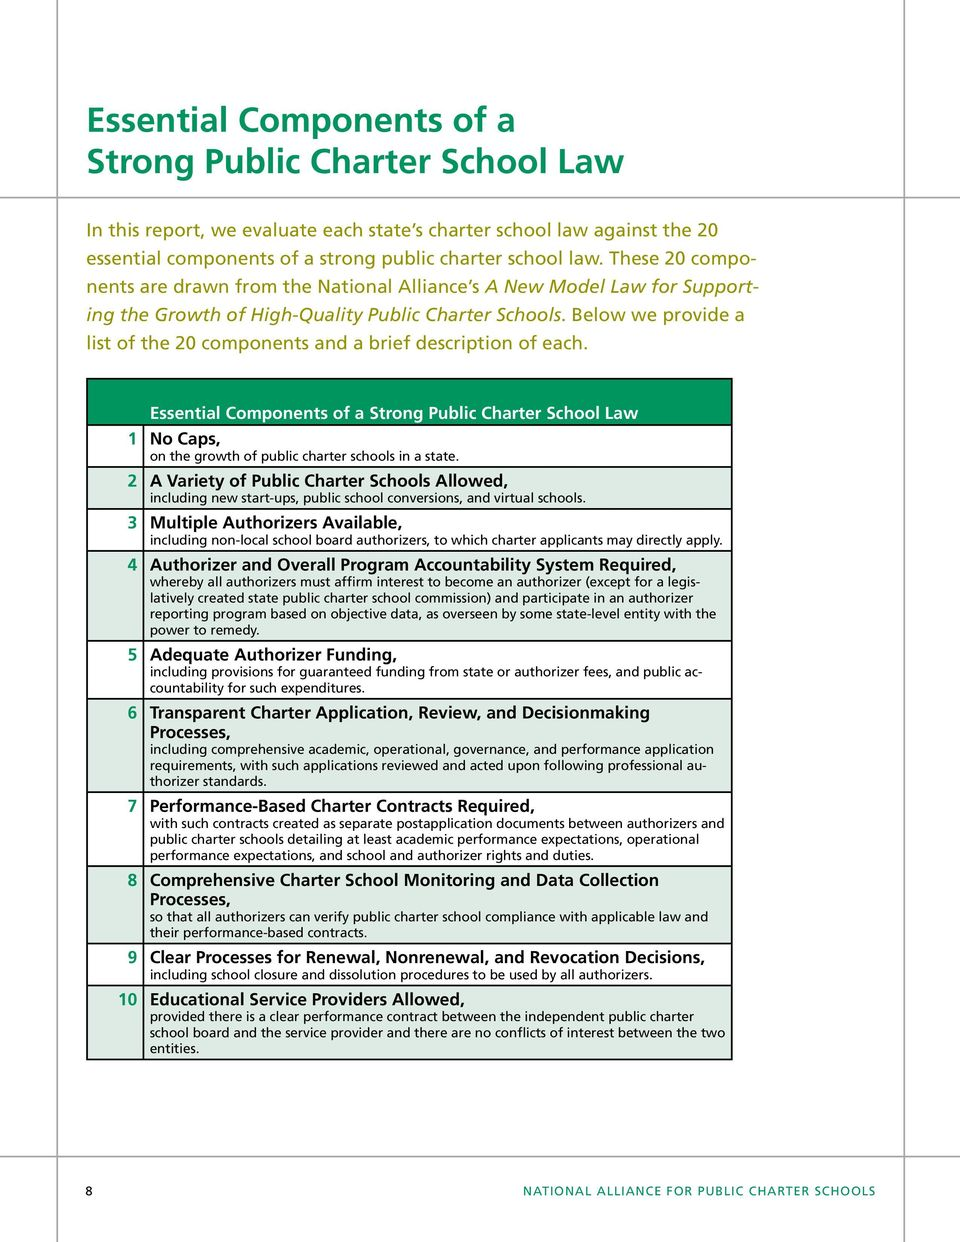 of a Strong Law 1 No Caps, on the growth of public charter schools in a state. 2 A Variety of s Allowed, including new start-ups, public school conversions, and virtual schools.